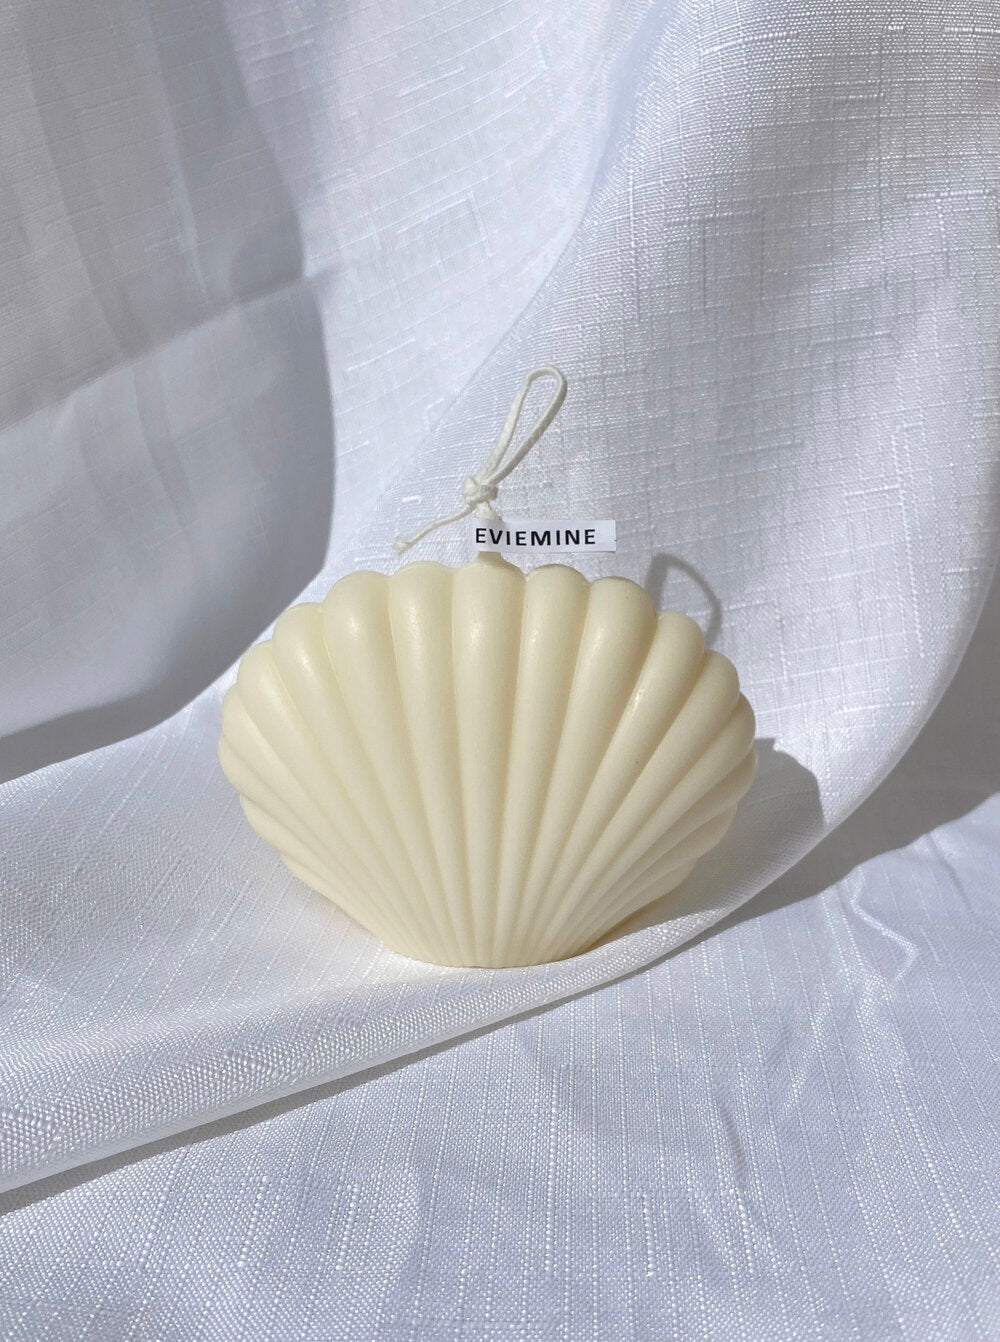 Evie Mine Clam Shell Candle in White